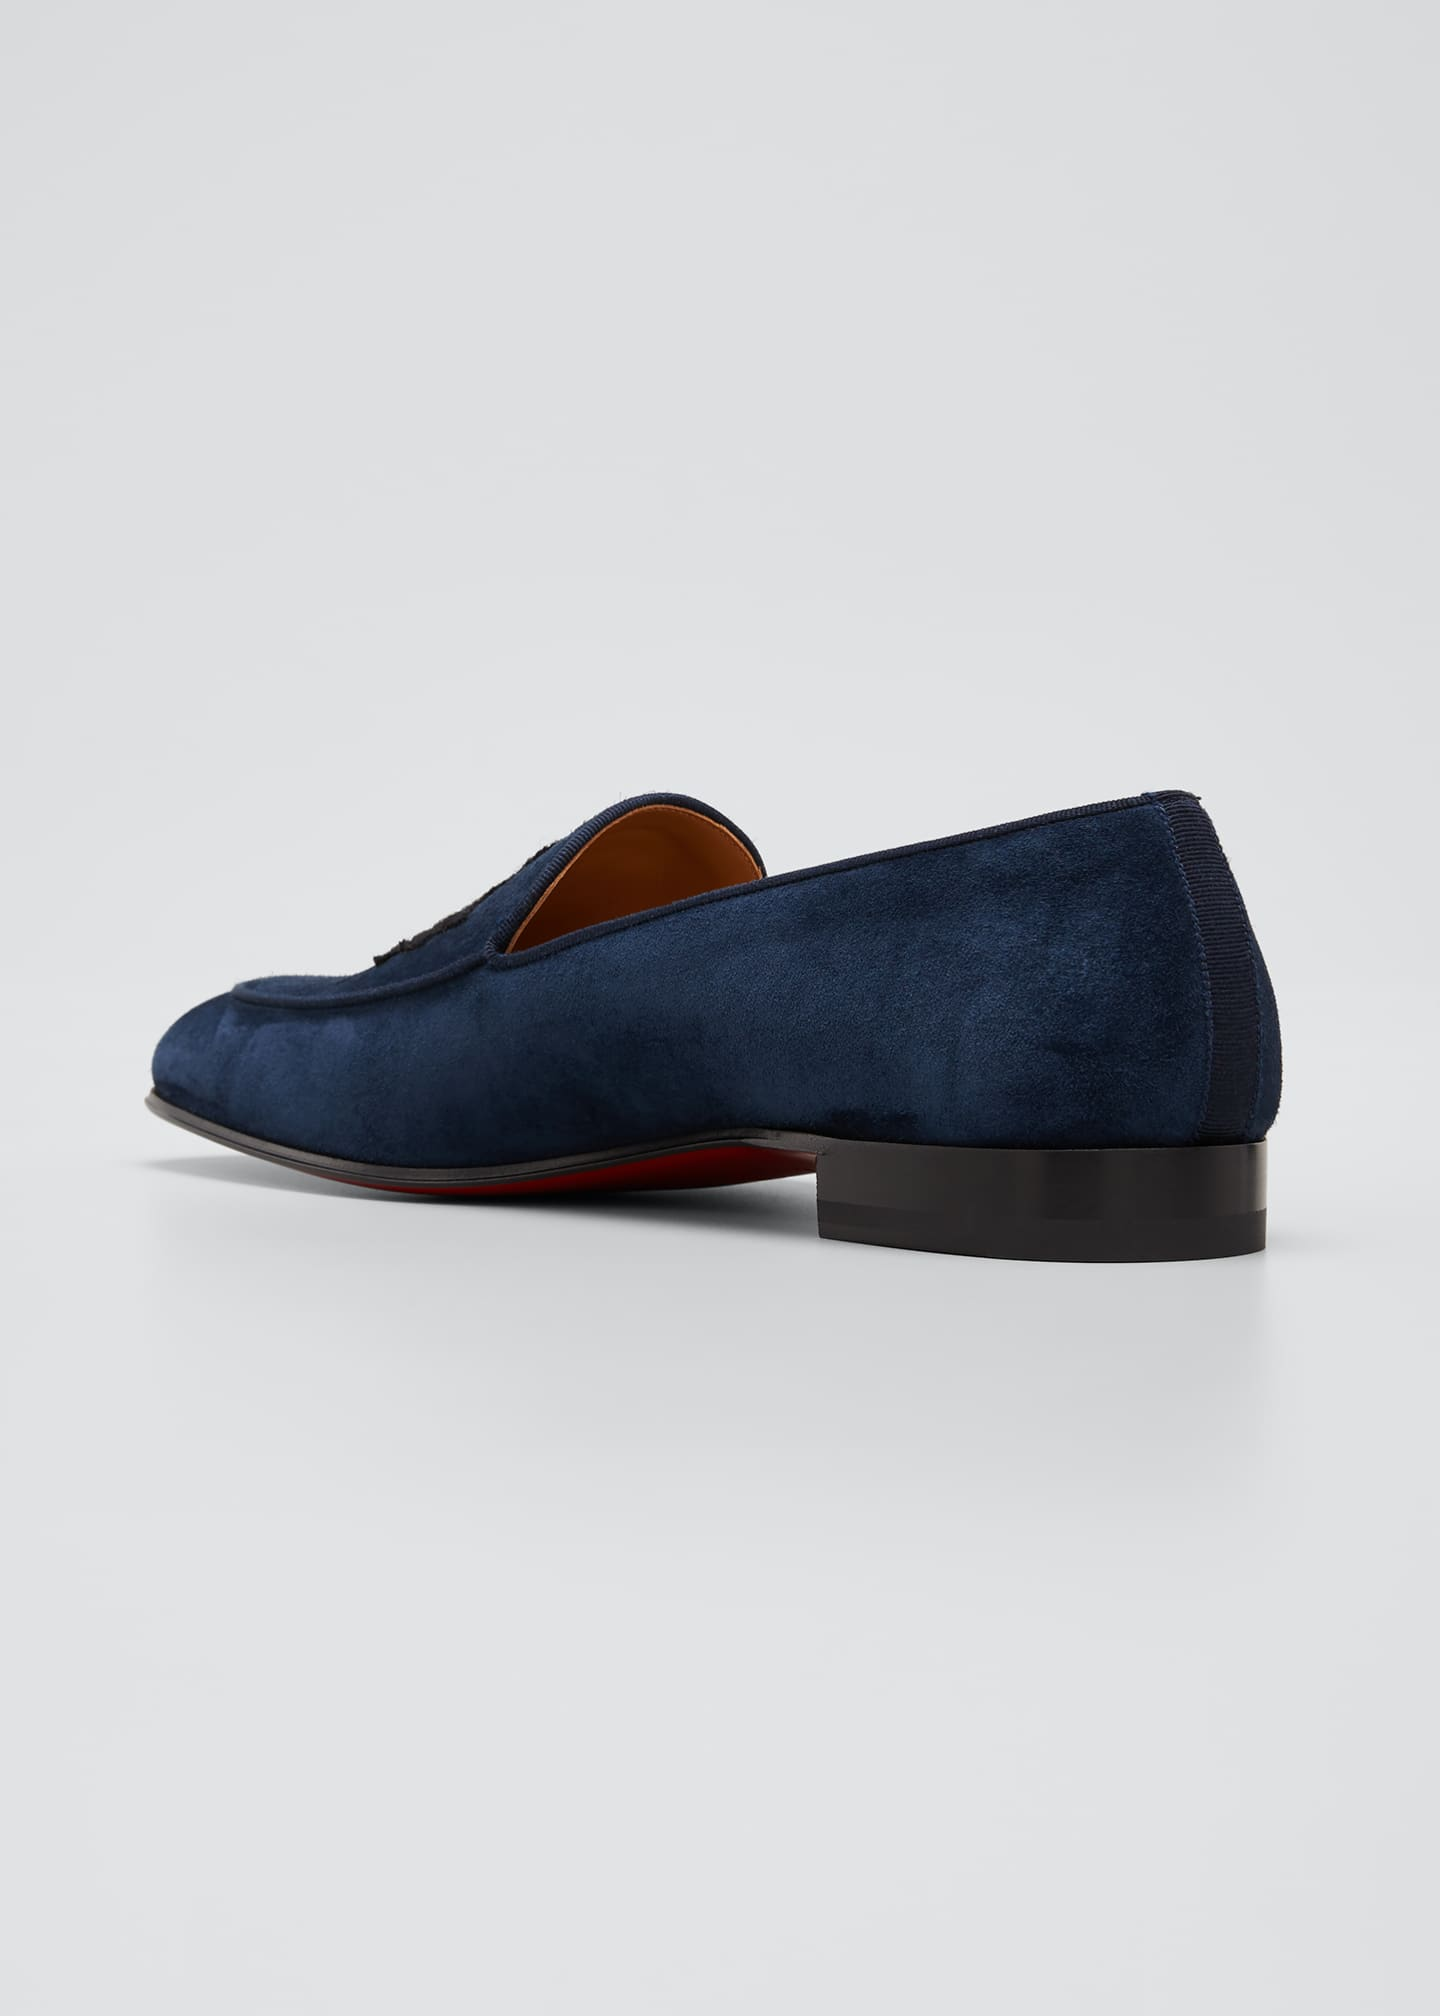 Image 3 of 4: Men's Crest on the Nile Suede Red Sole Loafers